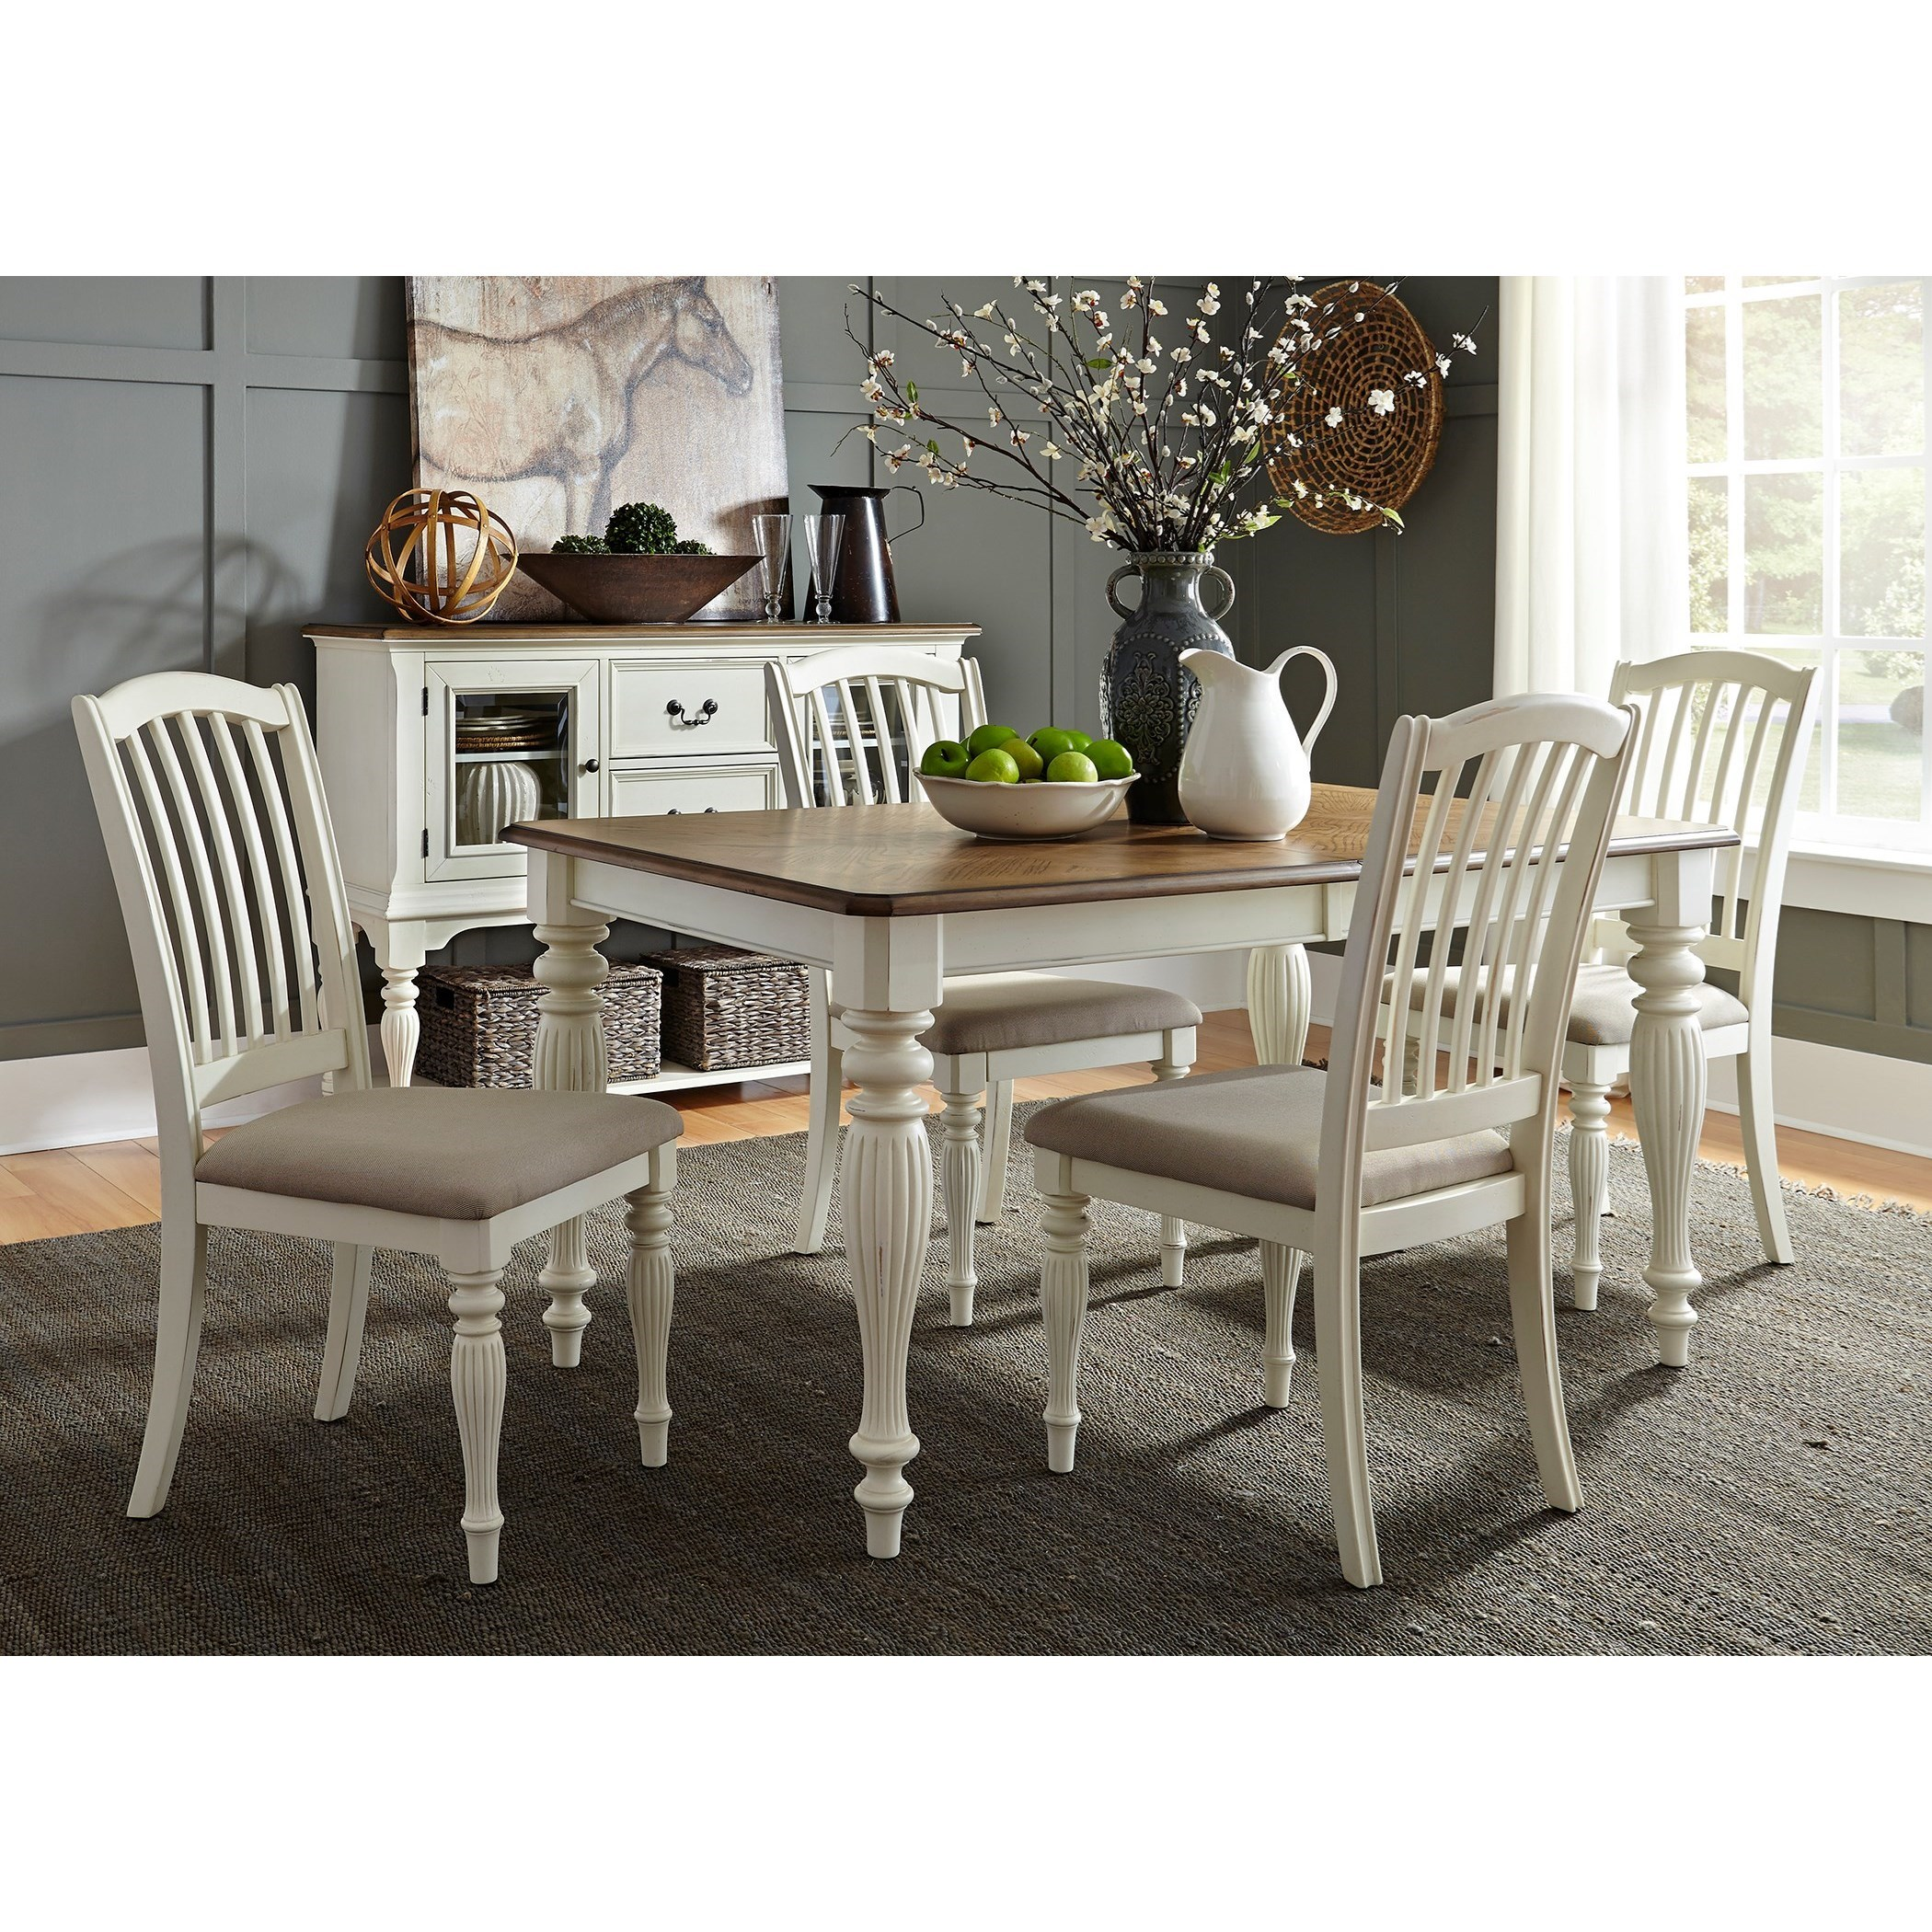 Liberty Furniture Cumberland Creek Dining 5 Piece Rectangular Table Set  - Item Number: 334-CD-5RLS